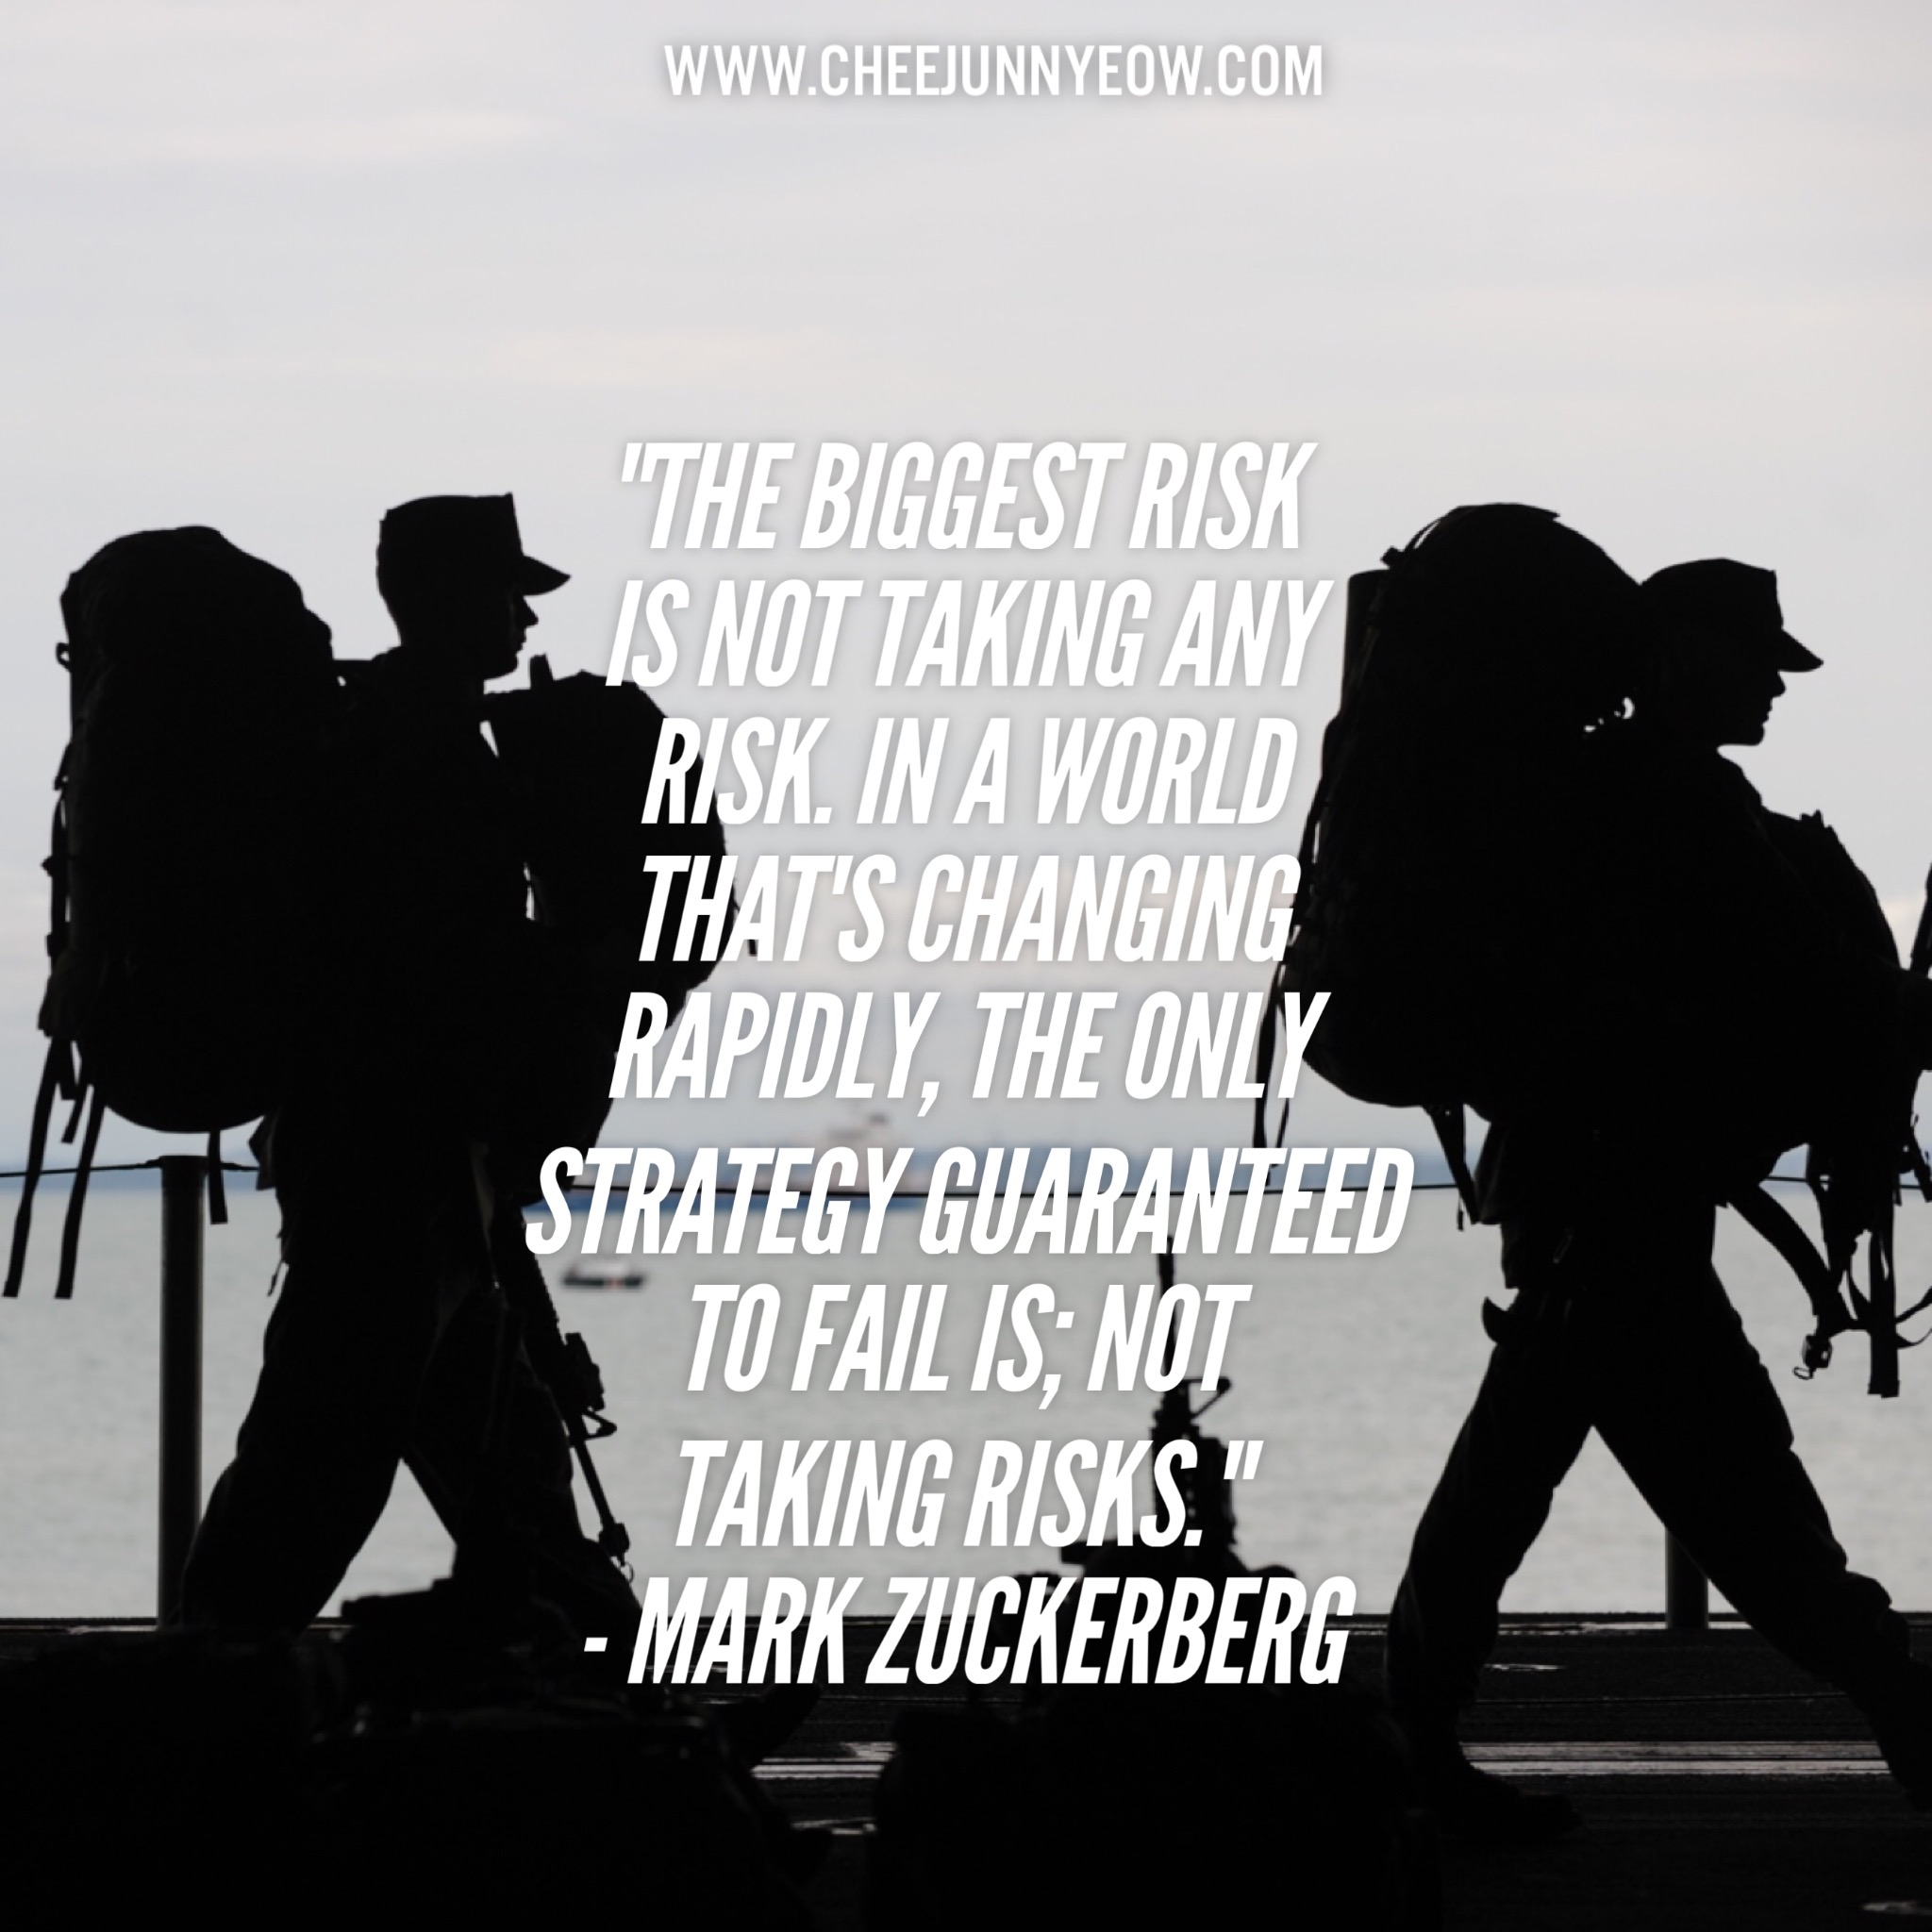 the biggest risk is not taking any risk in a world that is changing rapidly